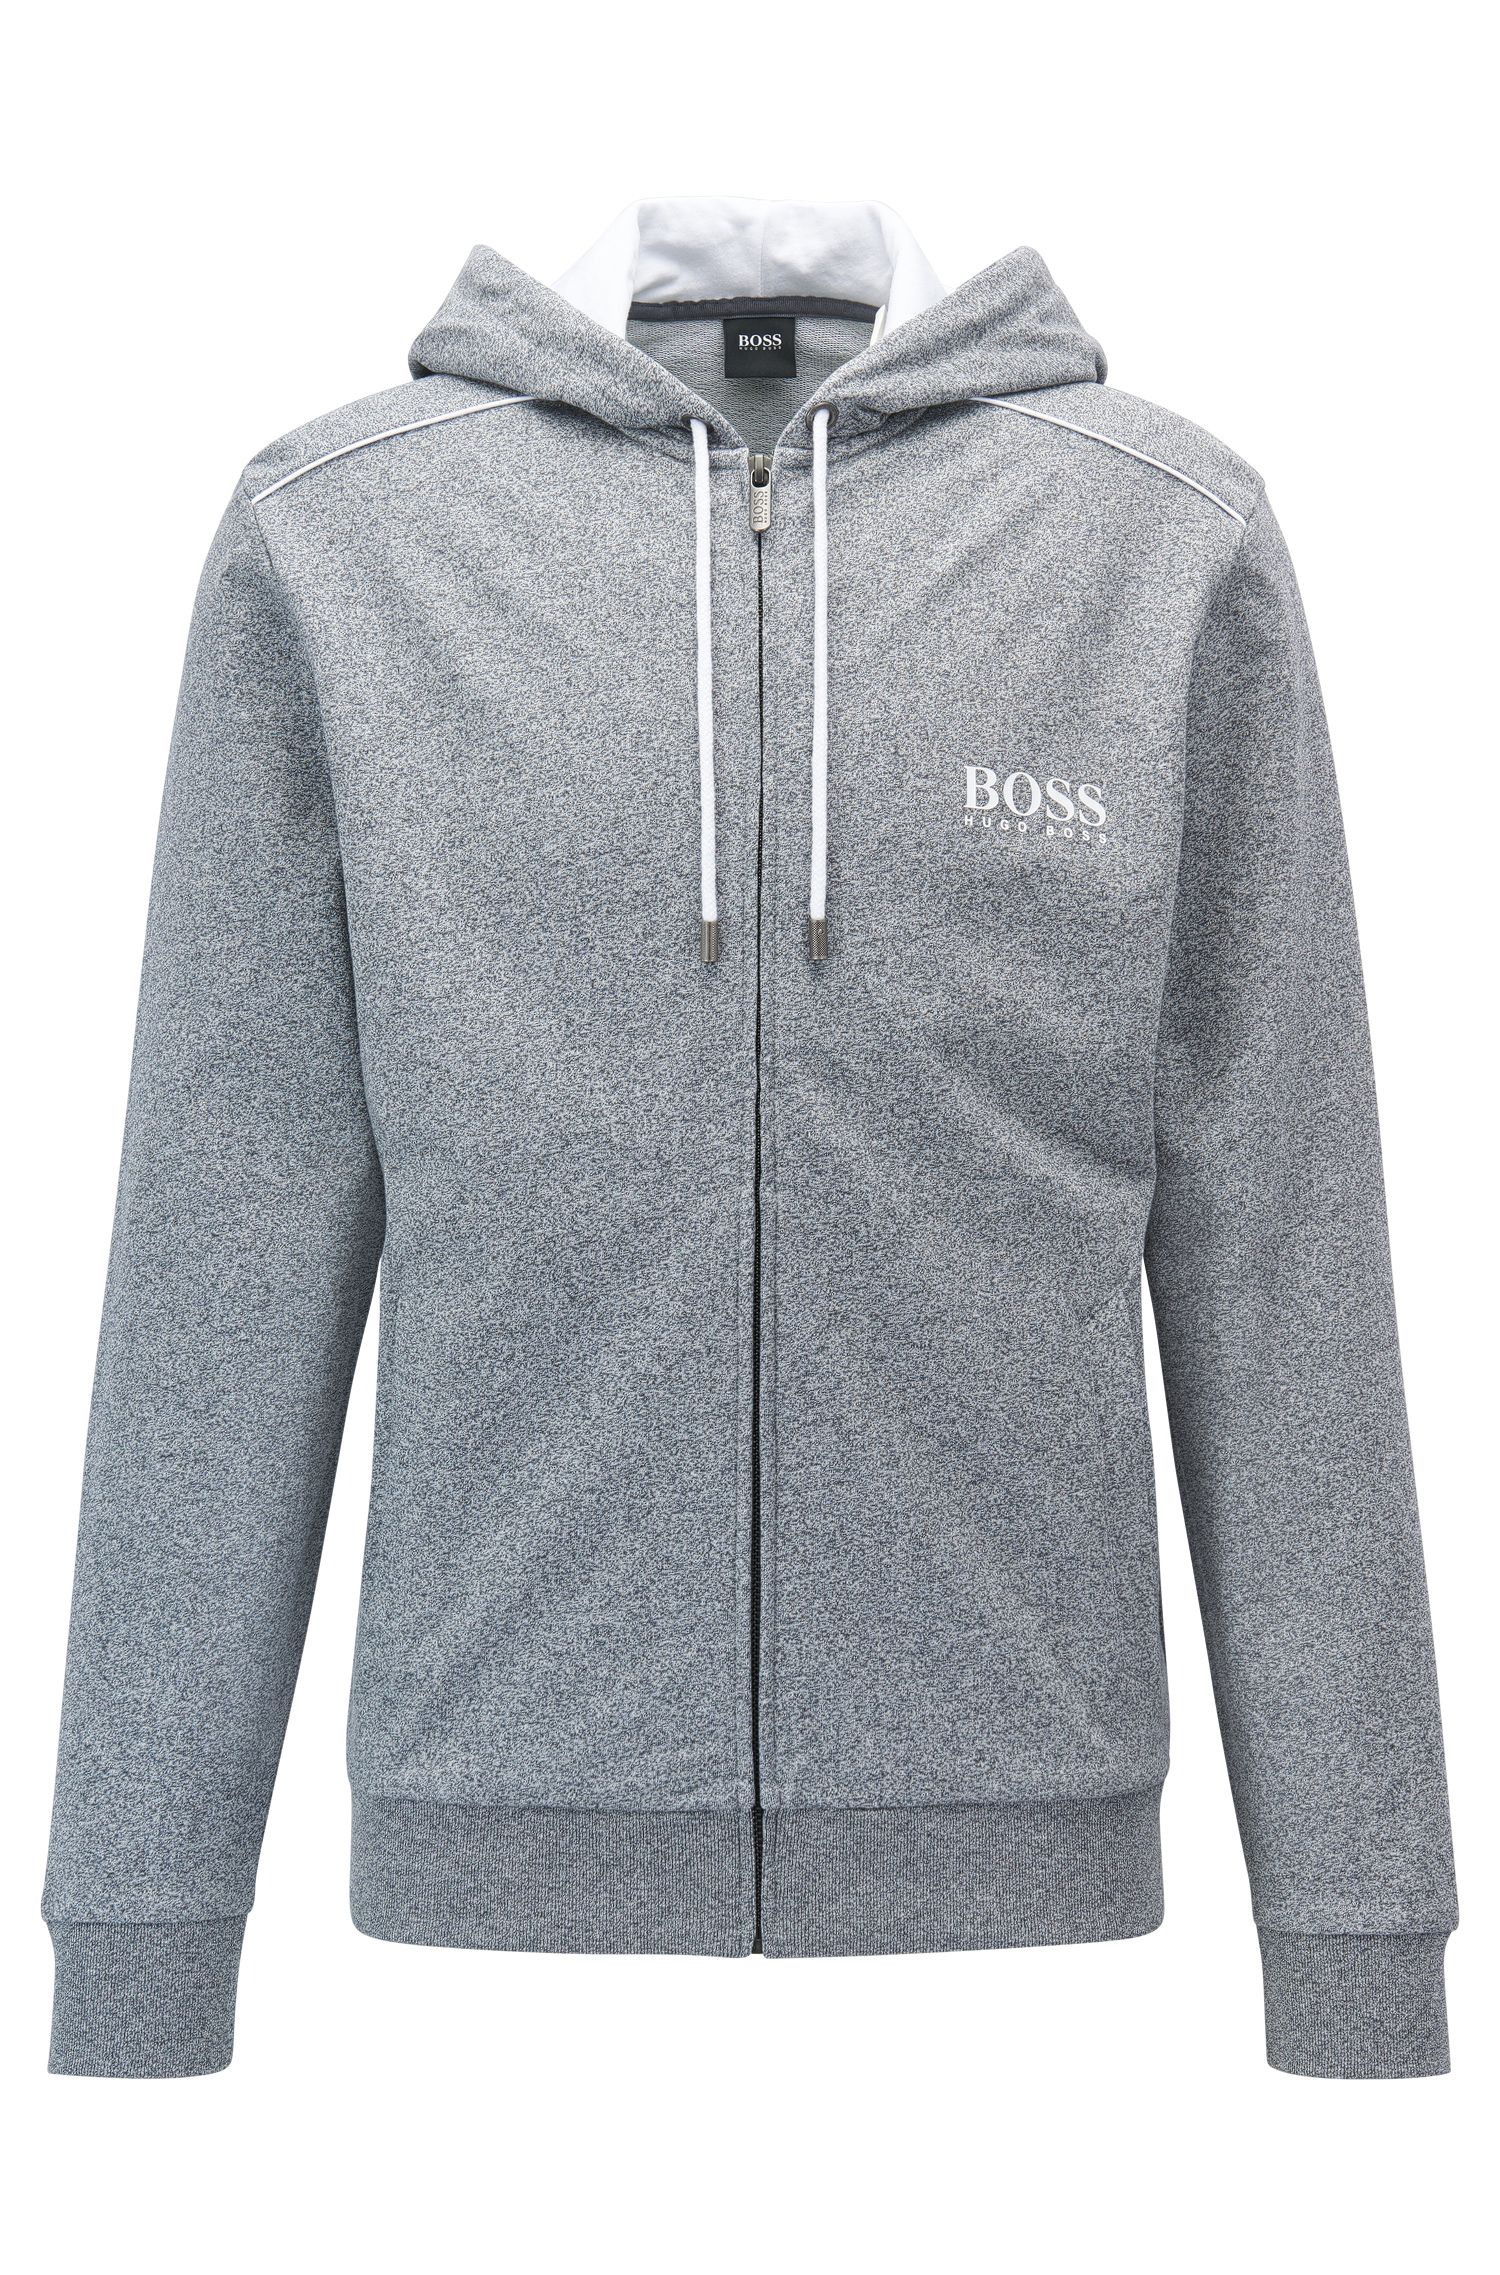 Heathered Cotton Hooded Sweat Jacket | Jacket Hooded